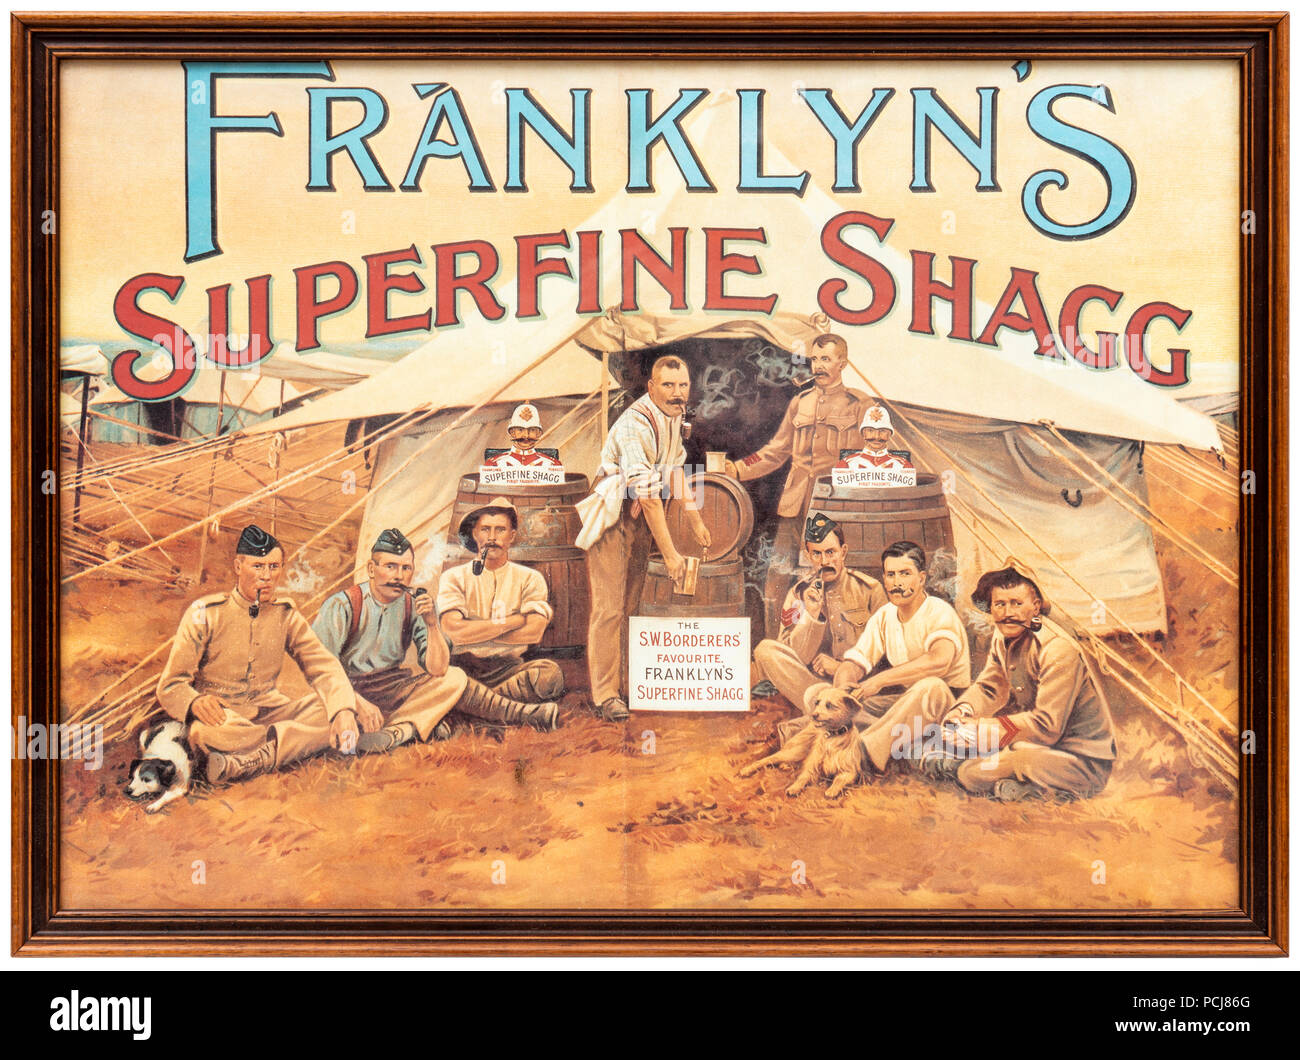 Framed advertising poster for 'Franklyn's Superfine Shagg' tobacco - Stock Image